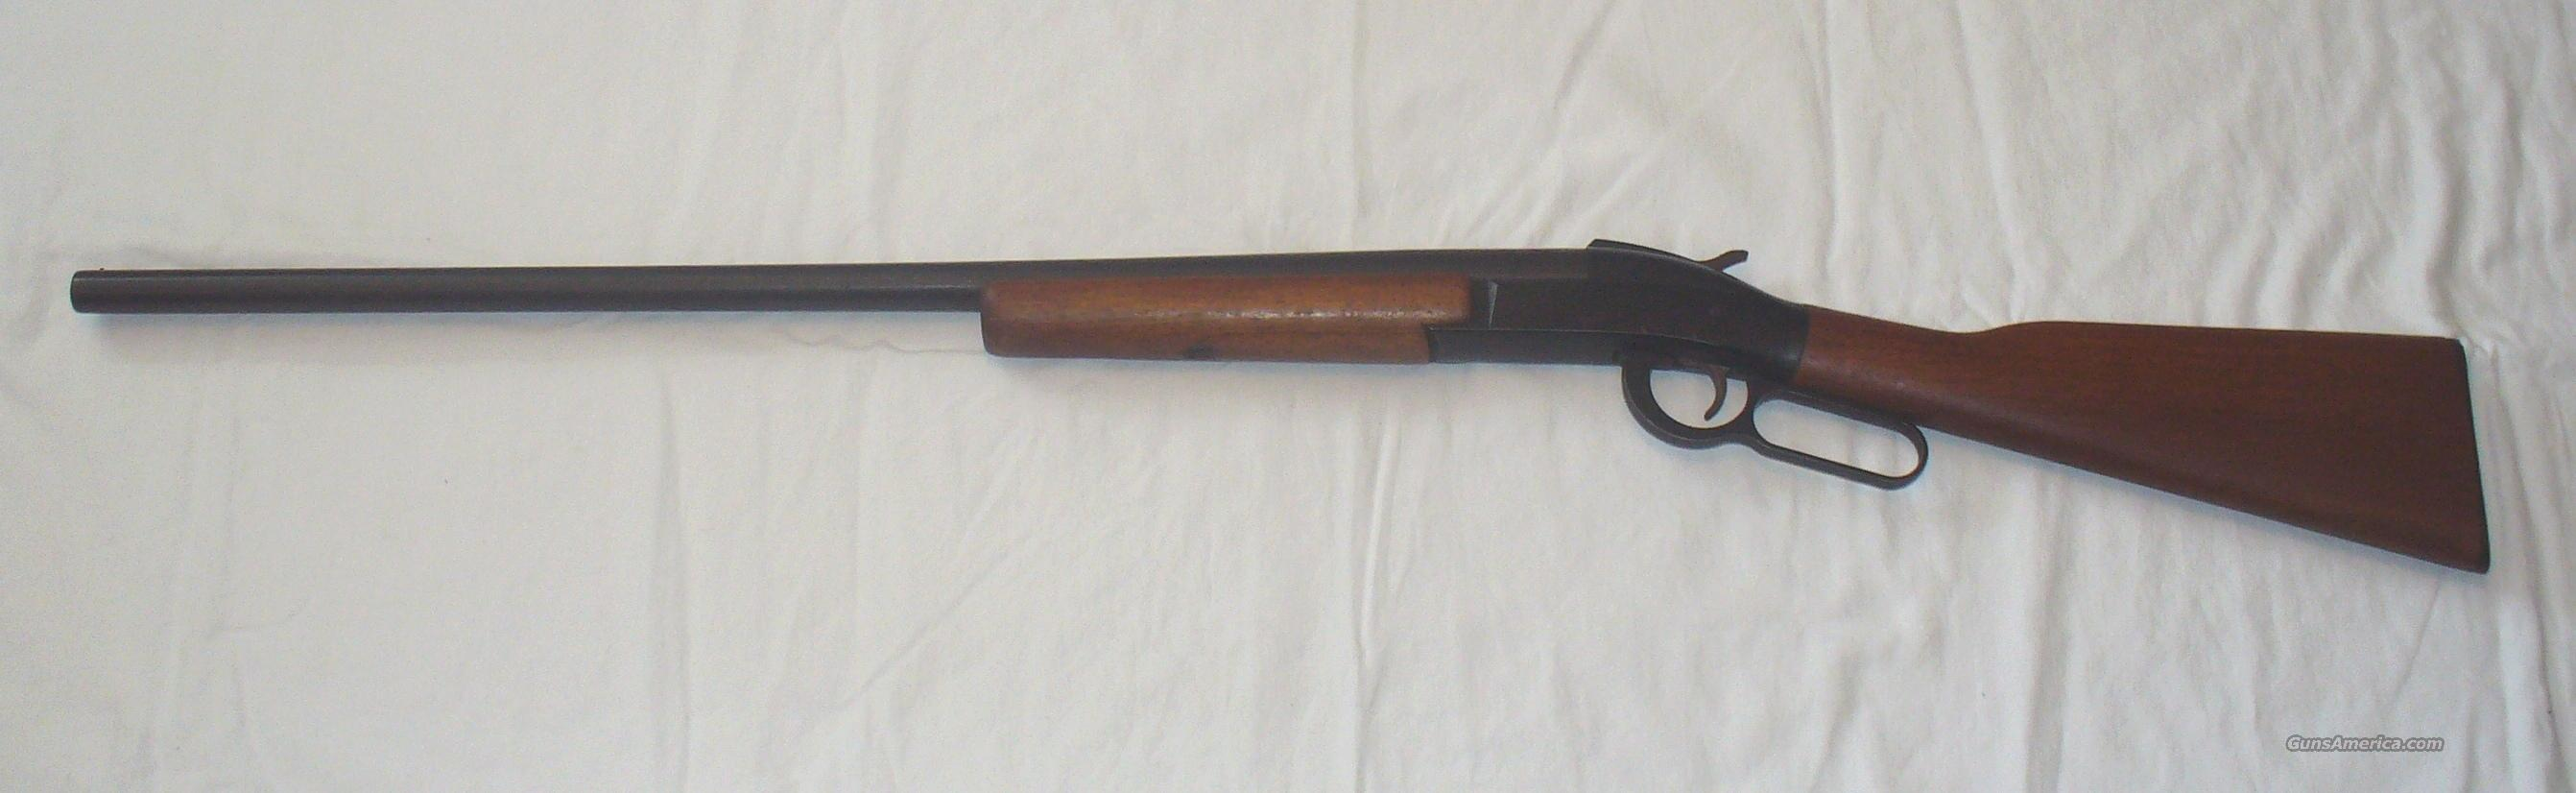 dating ithaca shotguns I have an offer from a cousin in another state to sell me an ithaca model 100 12ga, single trigger double barrel shotgun that belonged to his dad, my.